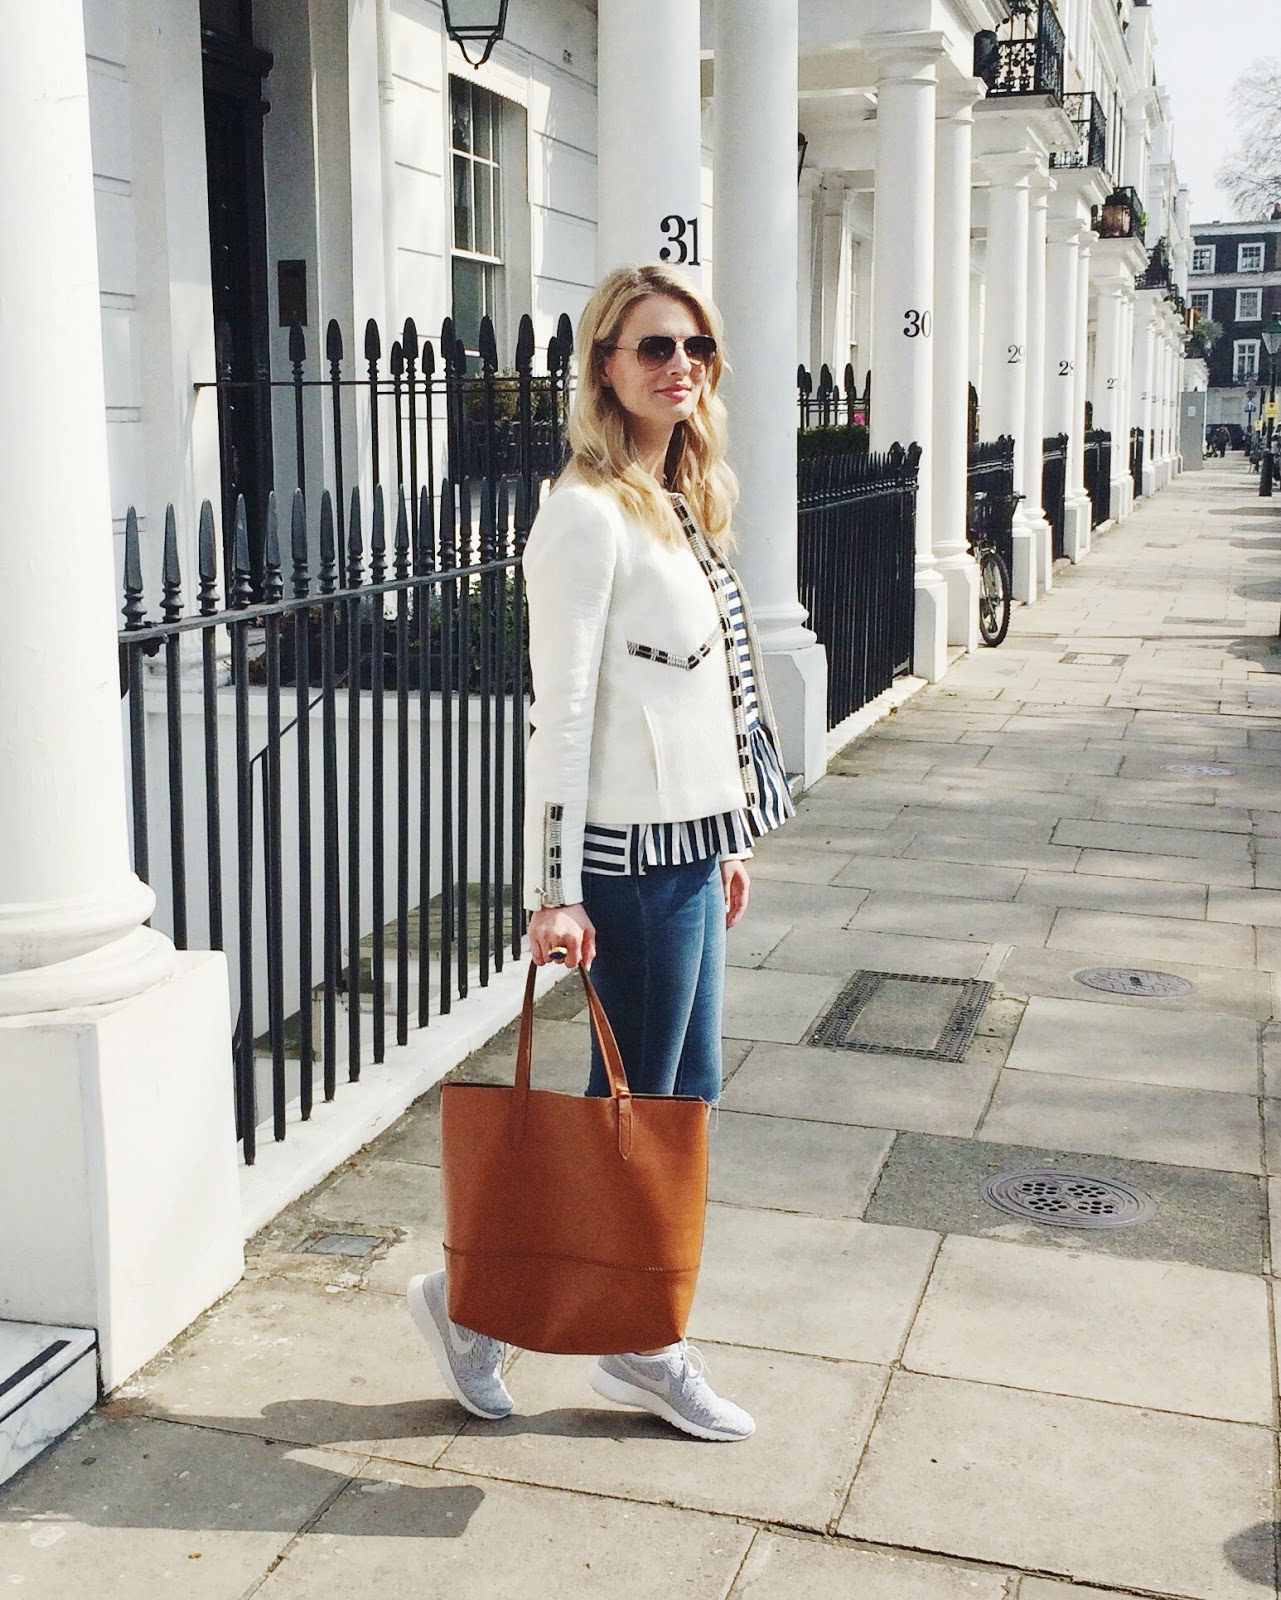 camel tote, brown leather tote, accessory fix, london blogger, street style london, white blazer, embellished blazer, striped top, striped zara top